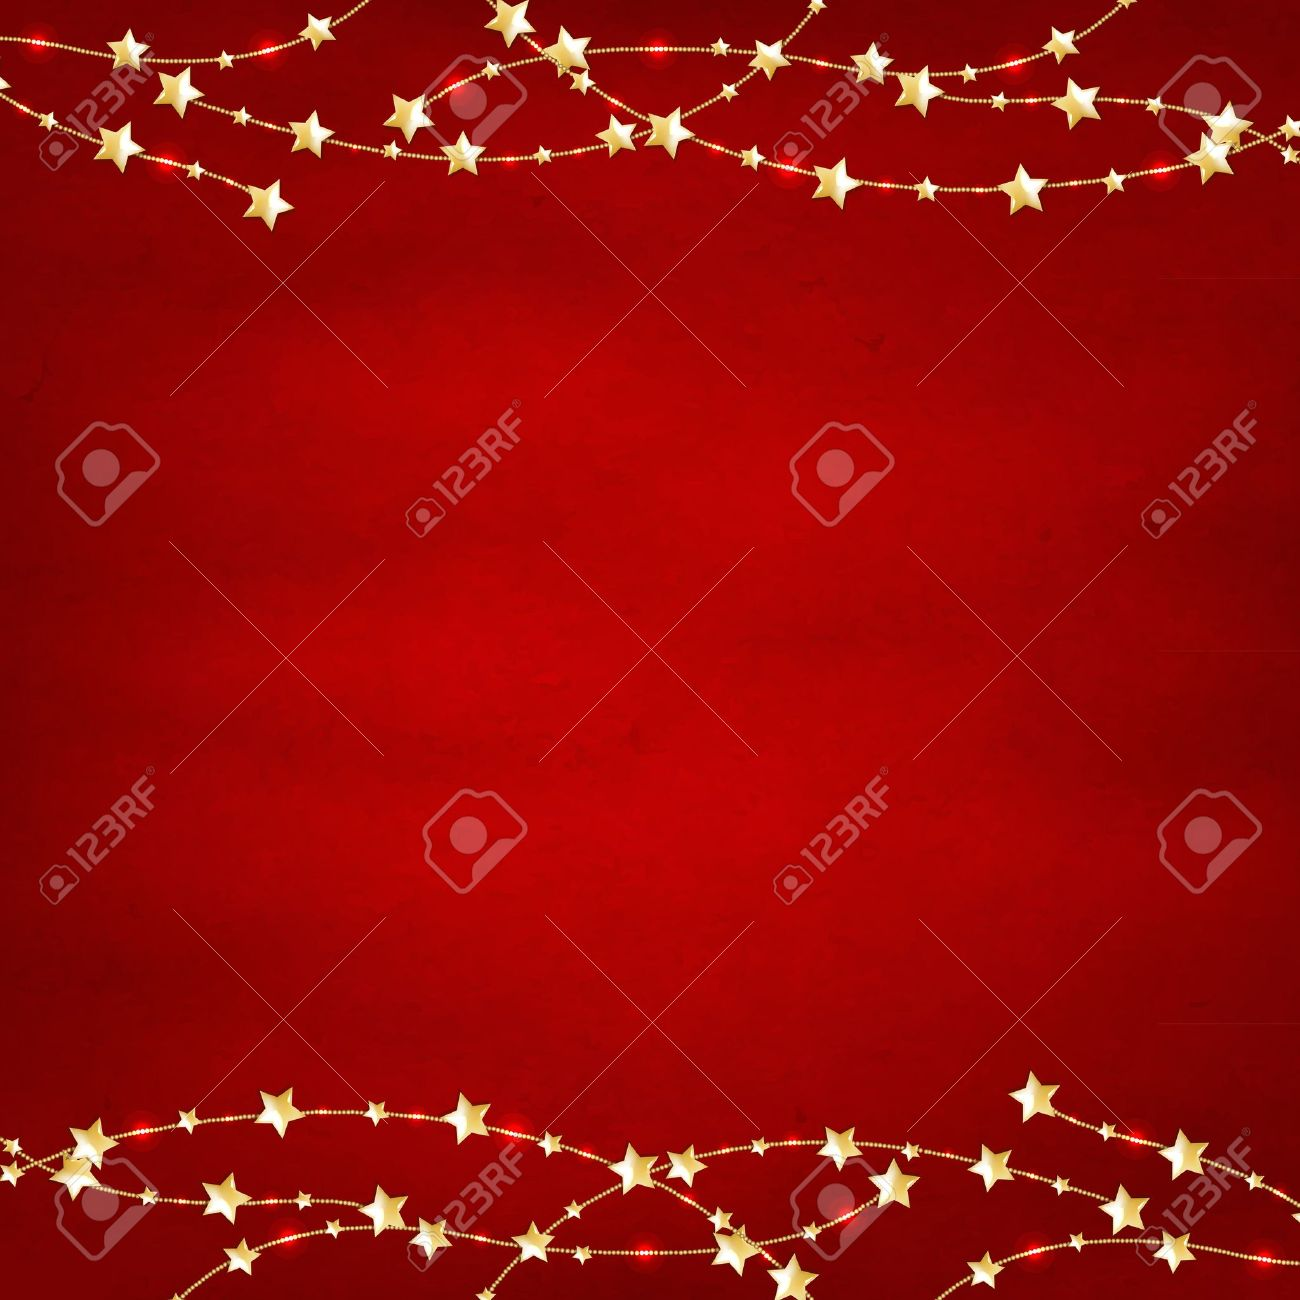 17383 gala stock vector illustration and royalty free gala clipart xmas red retro background with gold stars garland with gradient mesh vector illustration stopboris Images